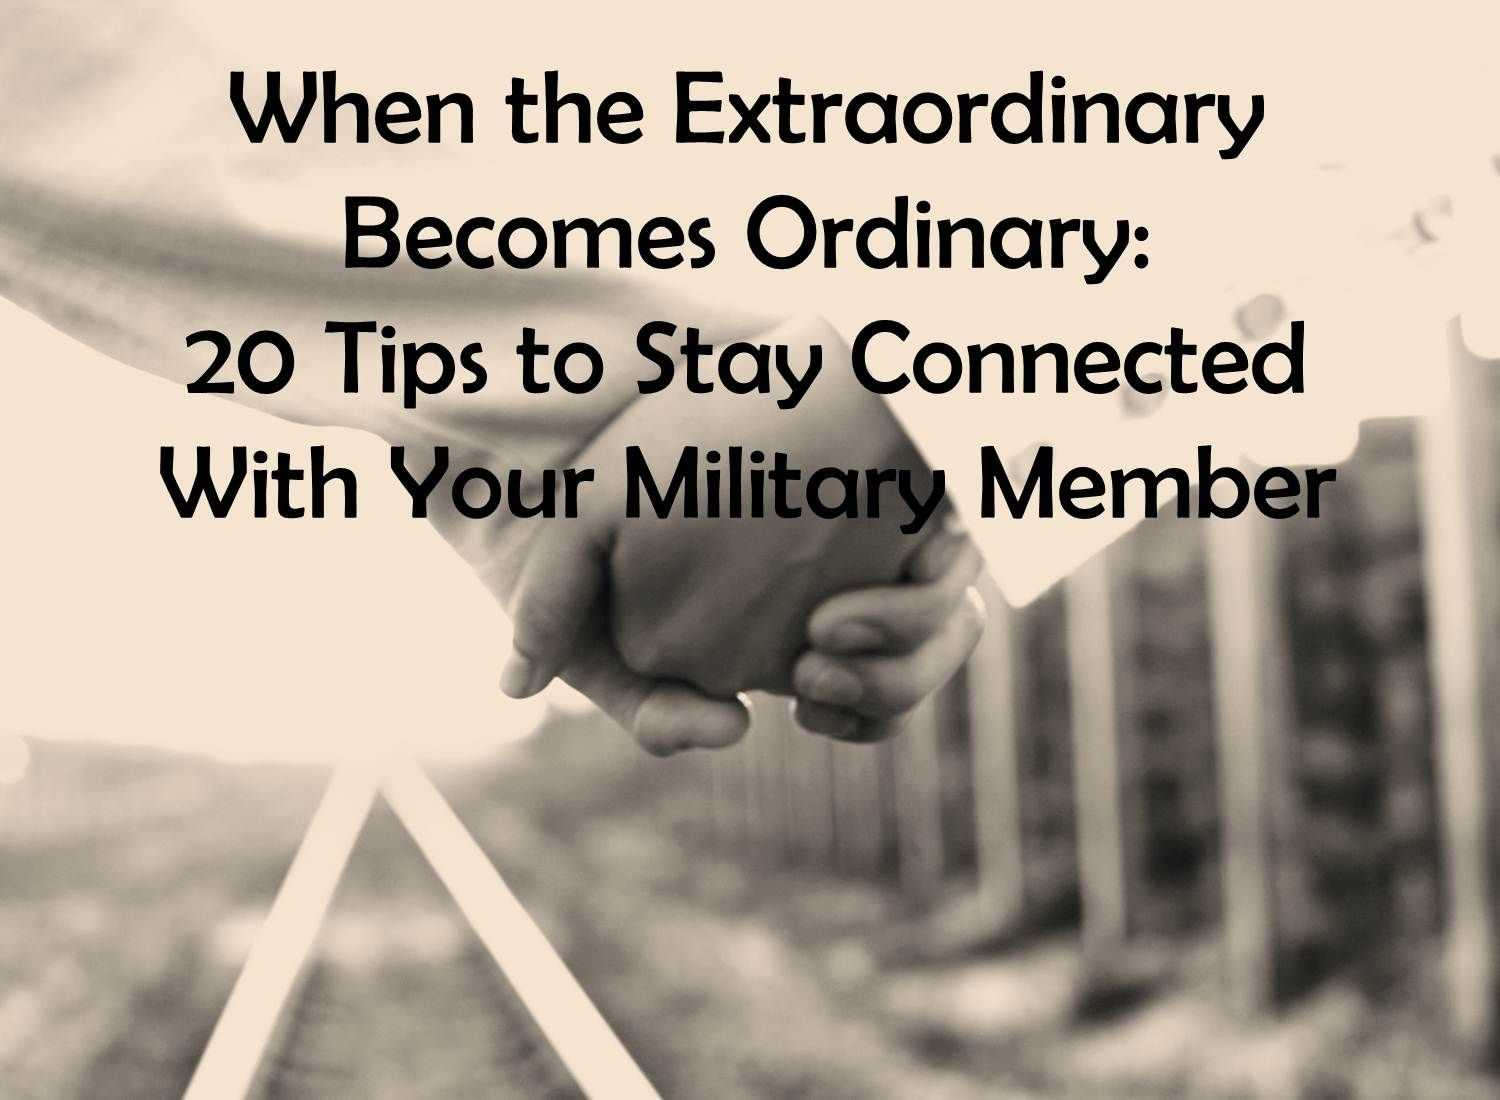 Military Love Quotes When The Extraordinary Becomes Ordinary Staying Connected When You